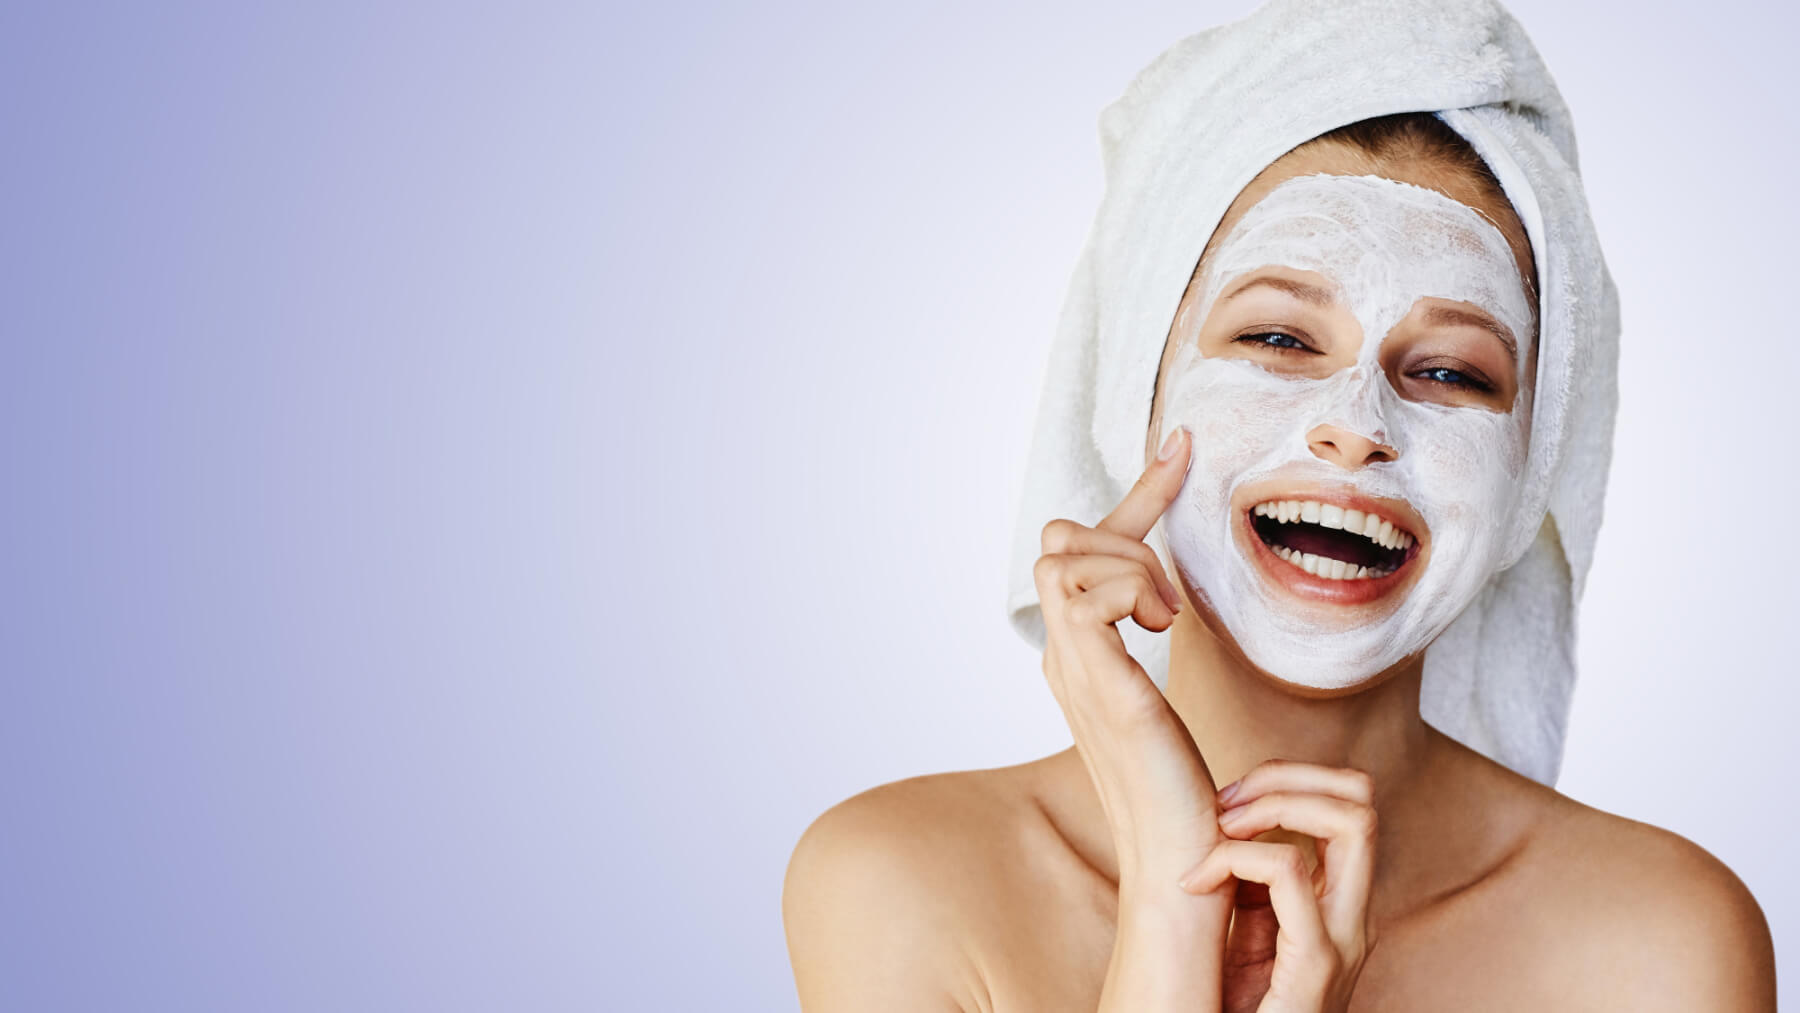 Treat Yourself! 7 Awesome Health Benefits of Facials for Your Skin